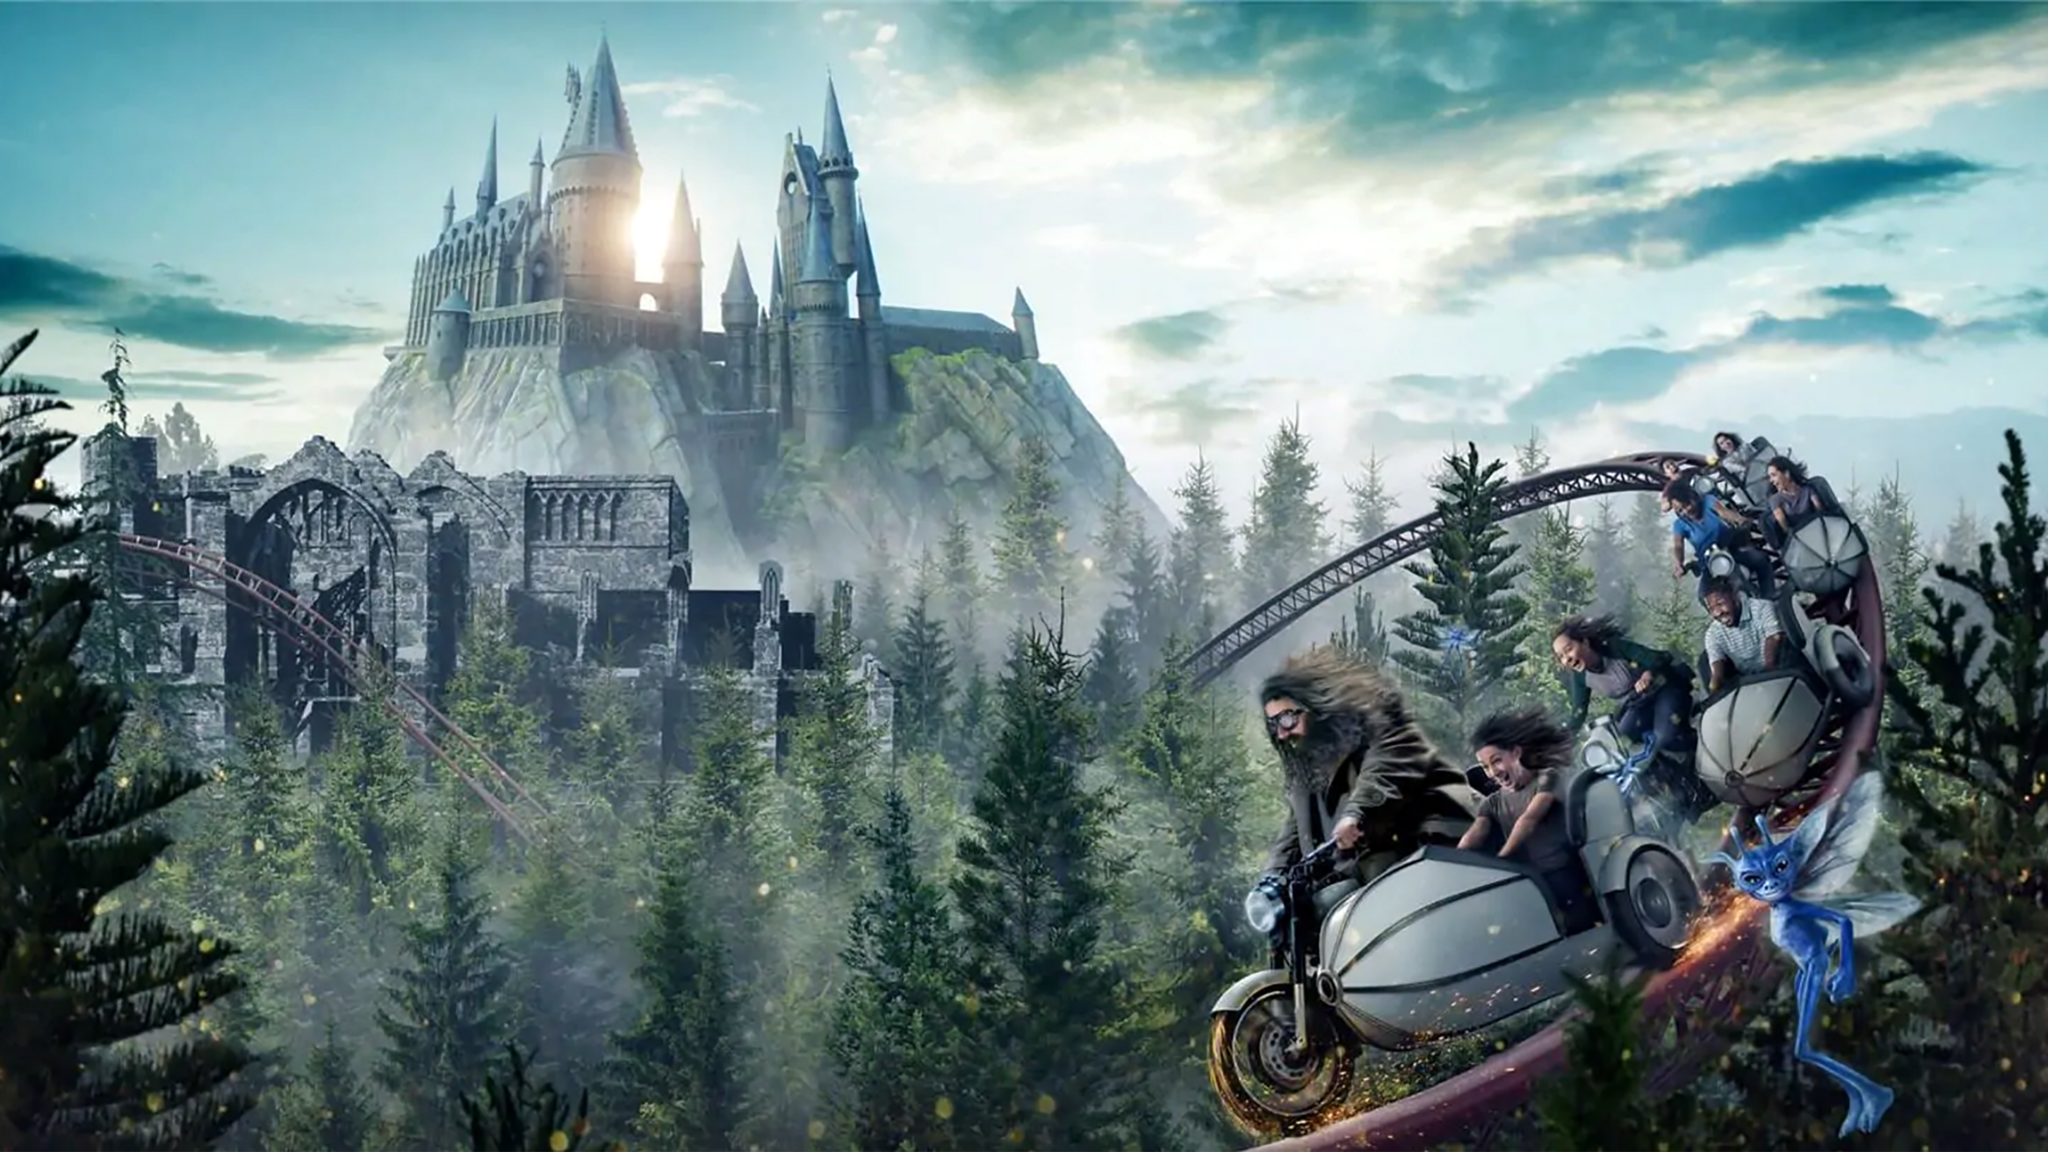 Universal Orlando Resort names new Harry Potter attraction